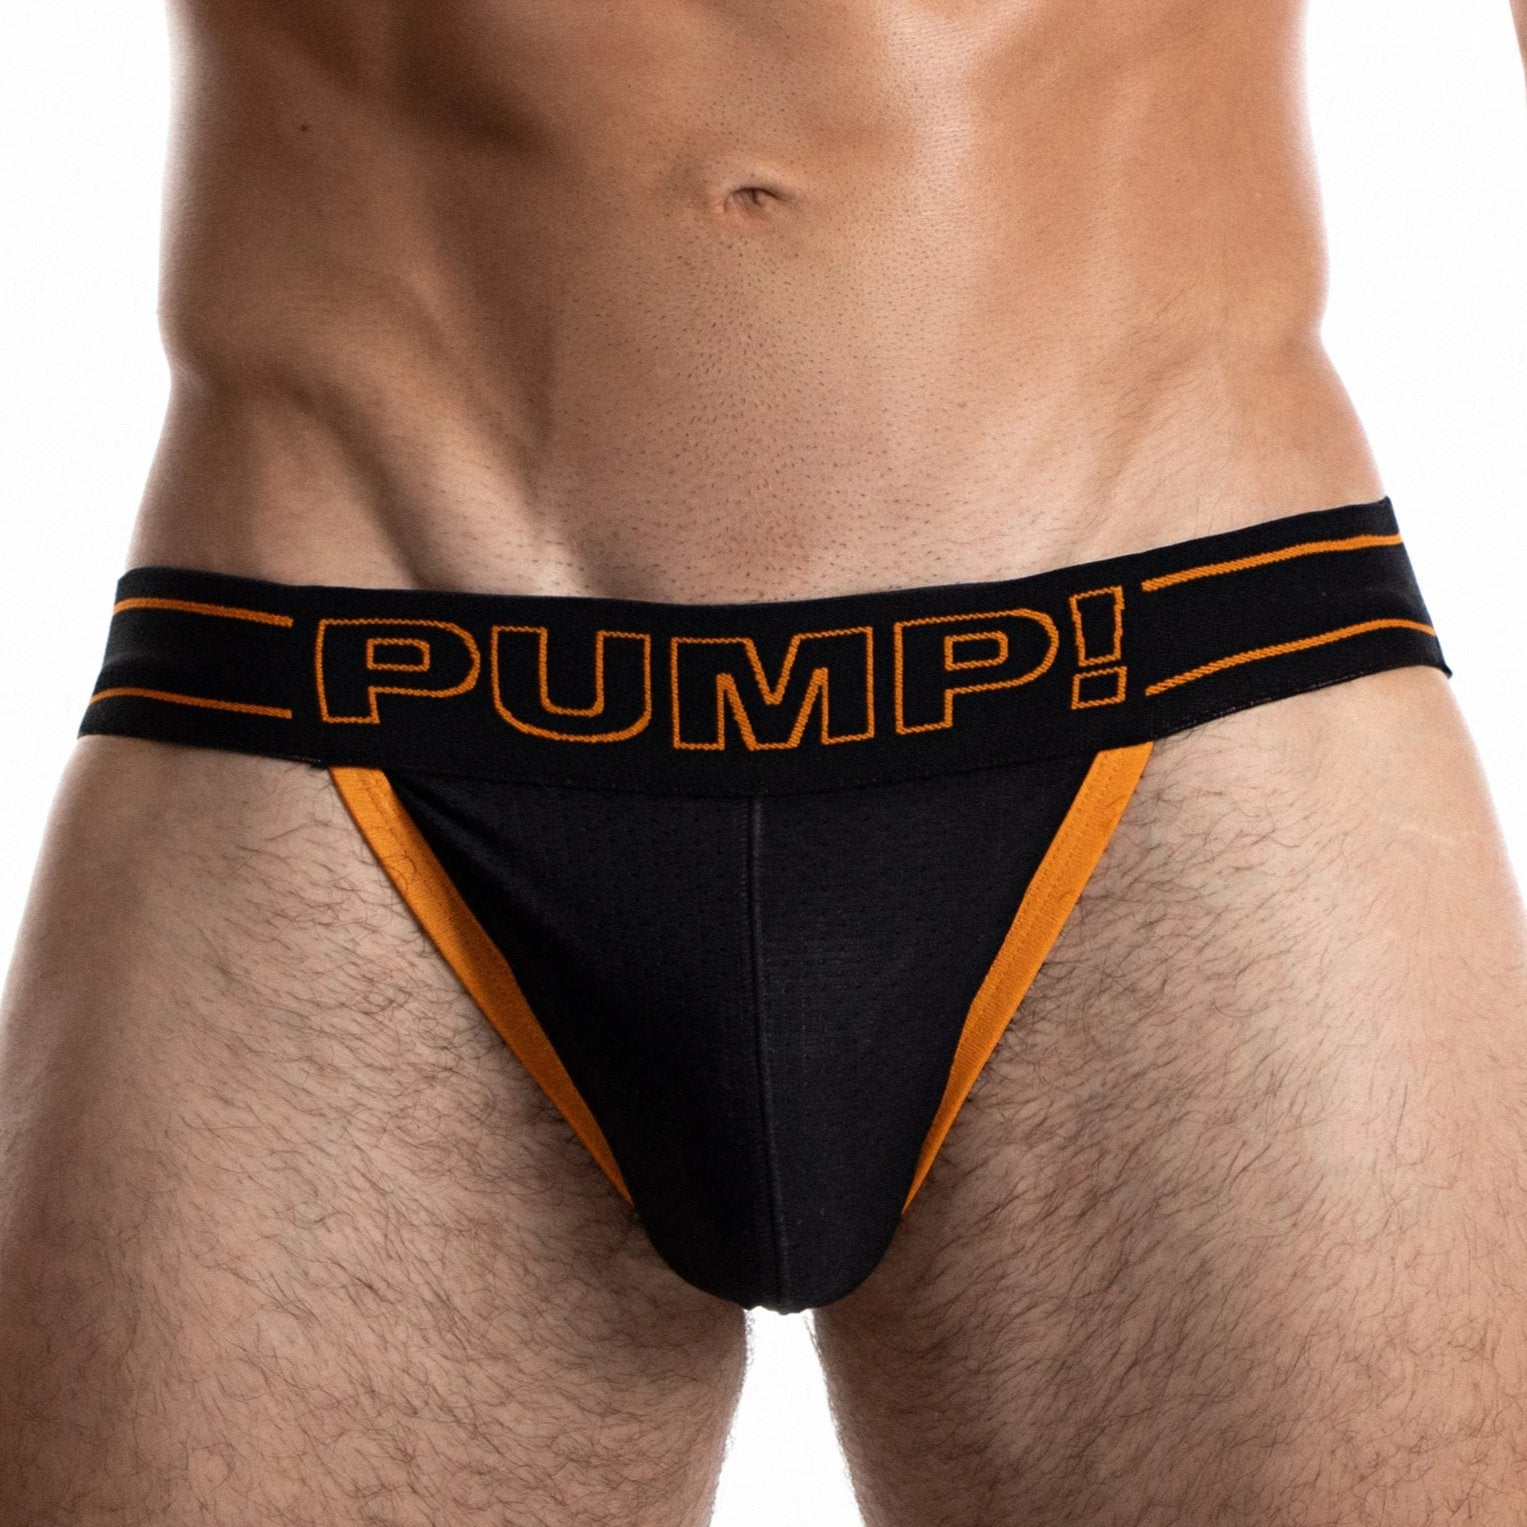 NightLight Jock - PUMP! - trender-wear.myshopify.com